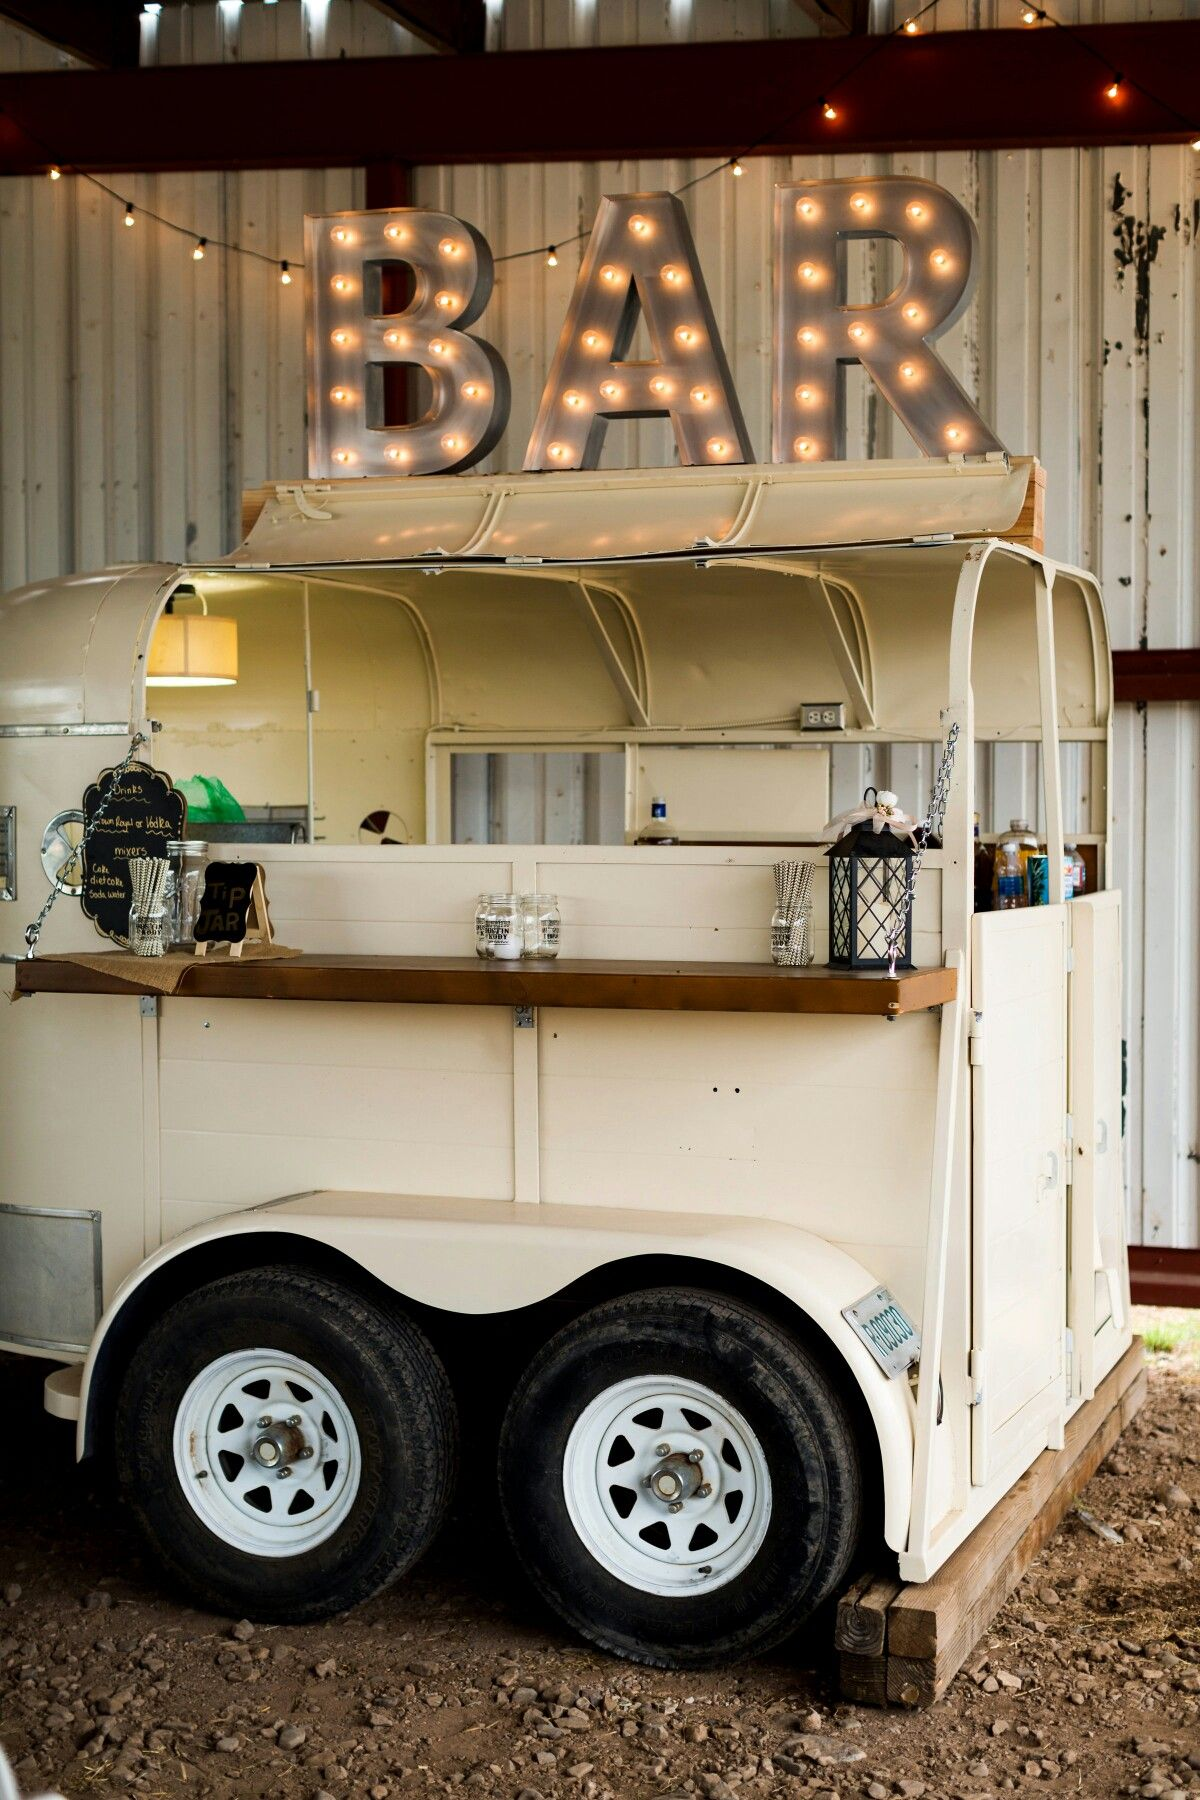 This Is A Horse Trailer I Turned Into A Bar For My Wedding